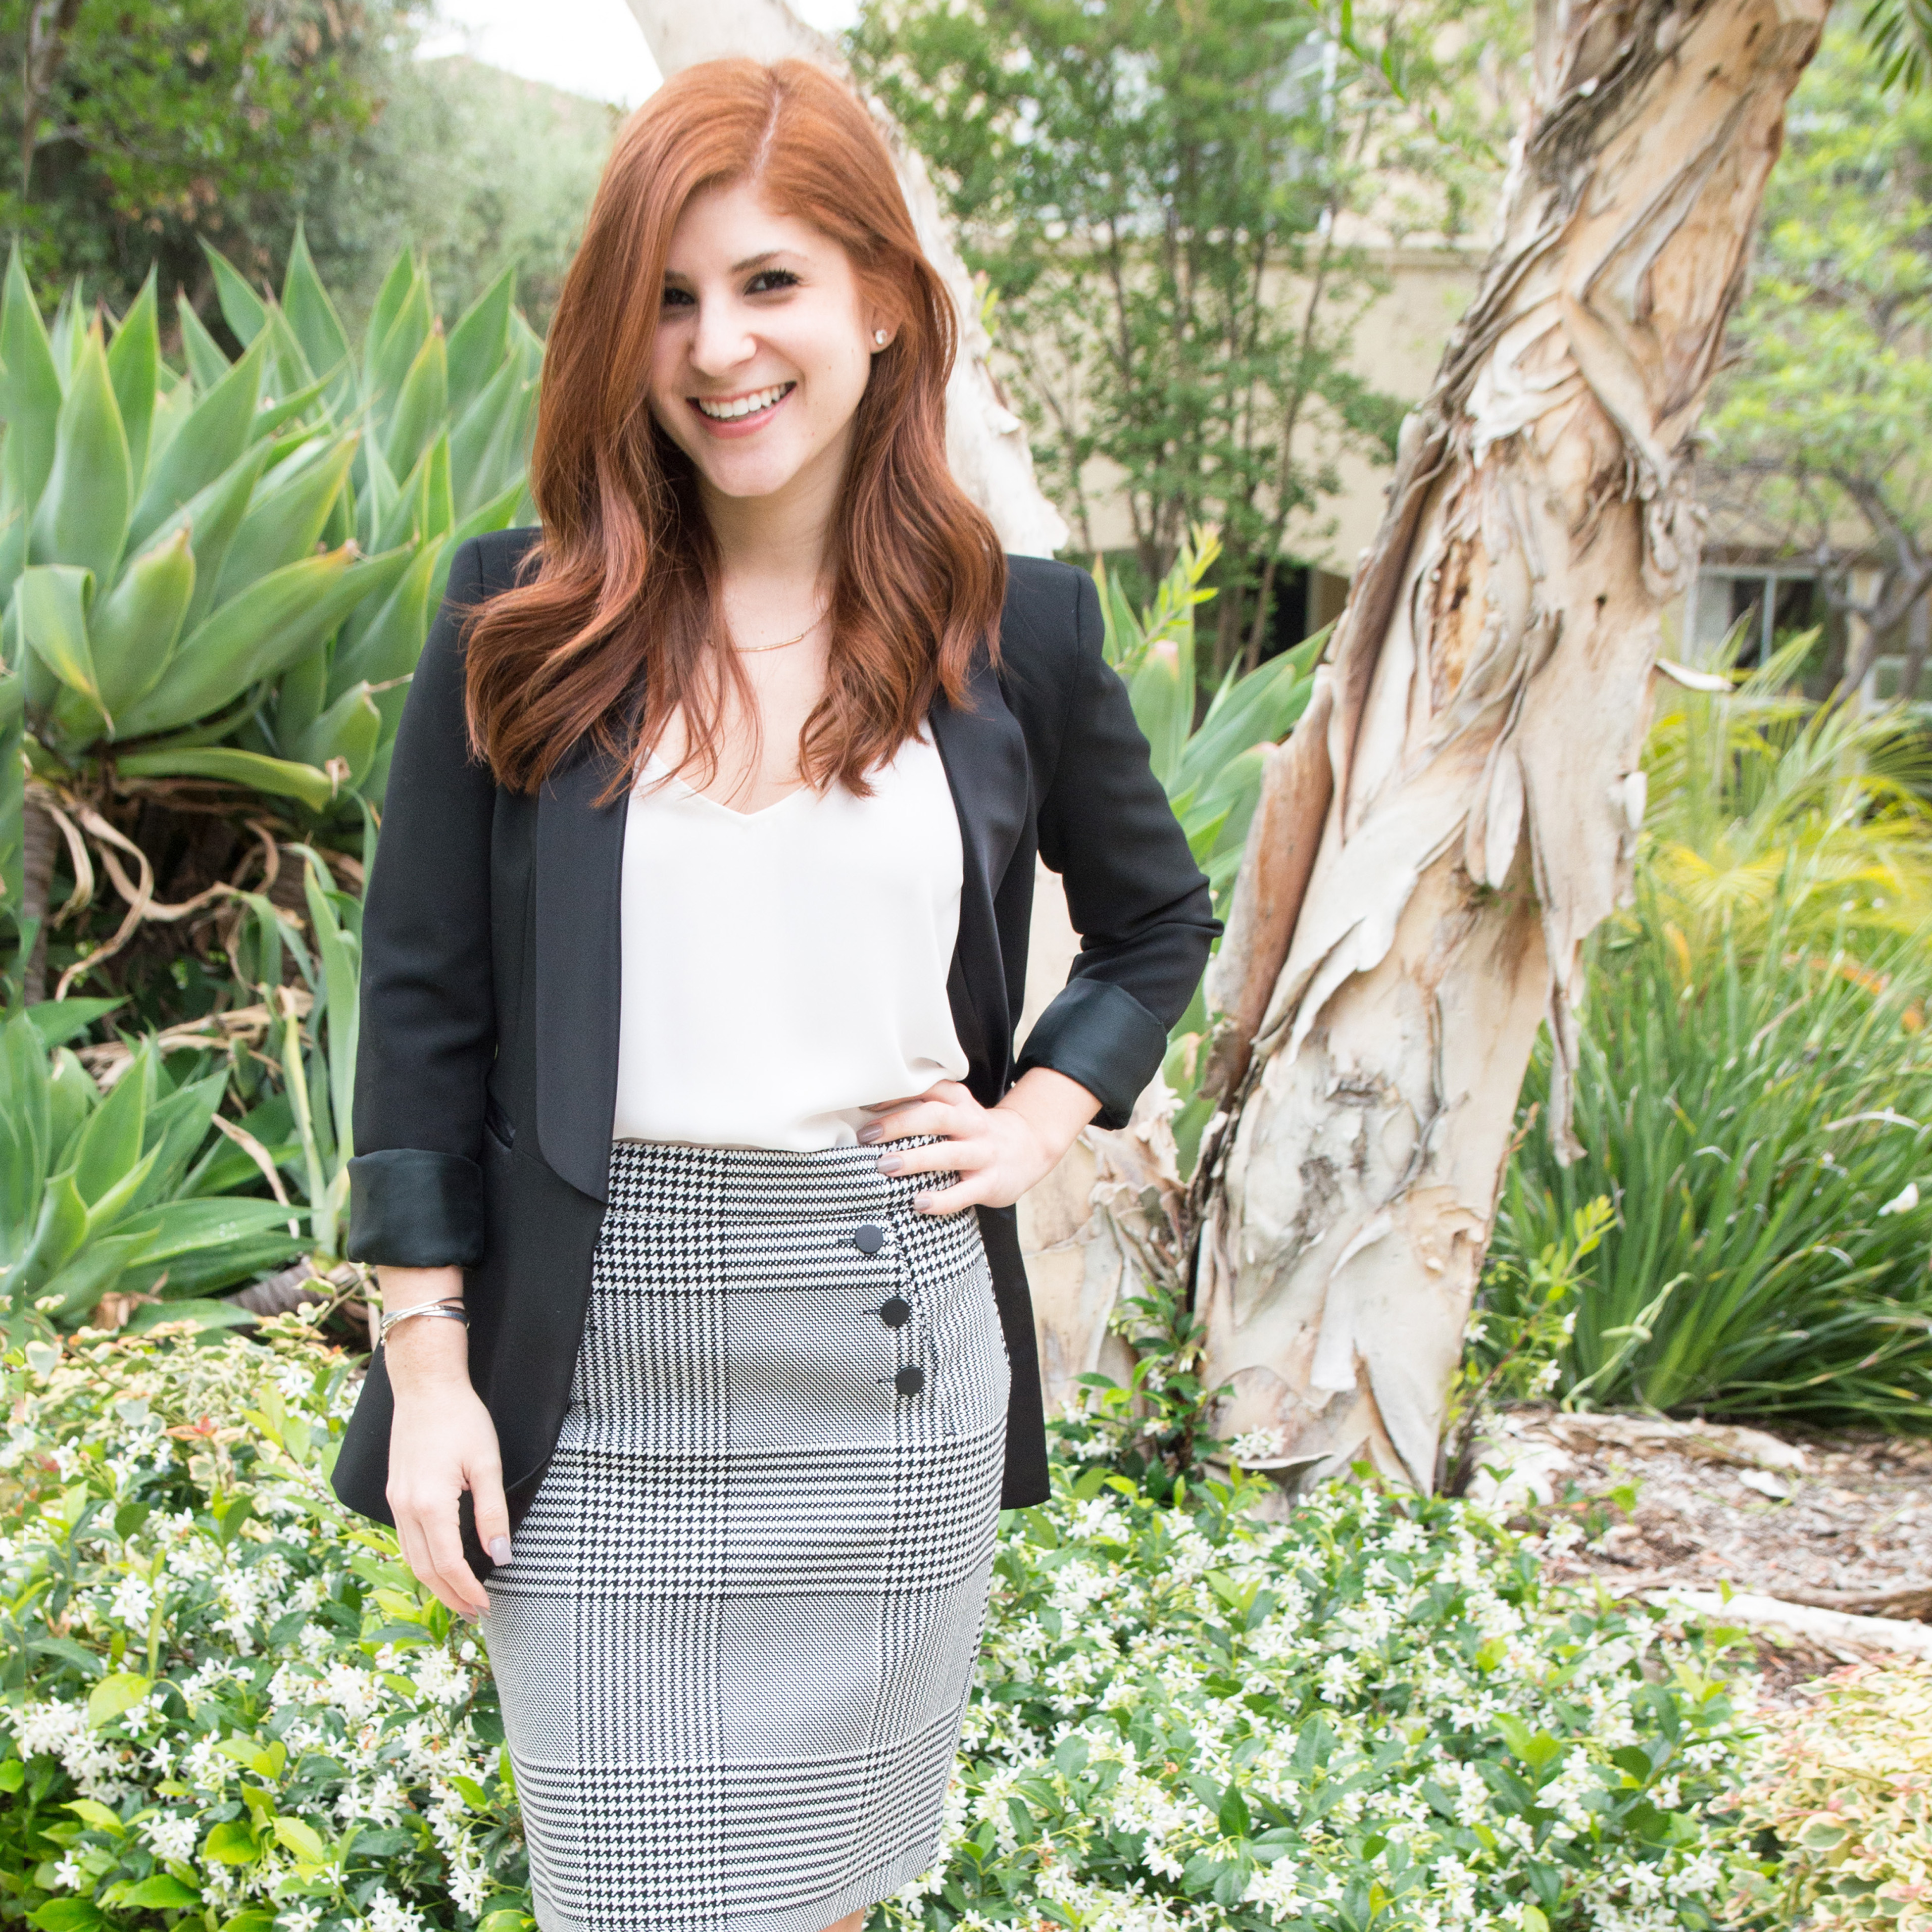 How bad is it to be overdressed for an interview? - Write ...